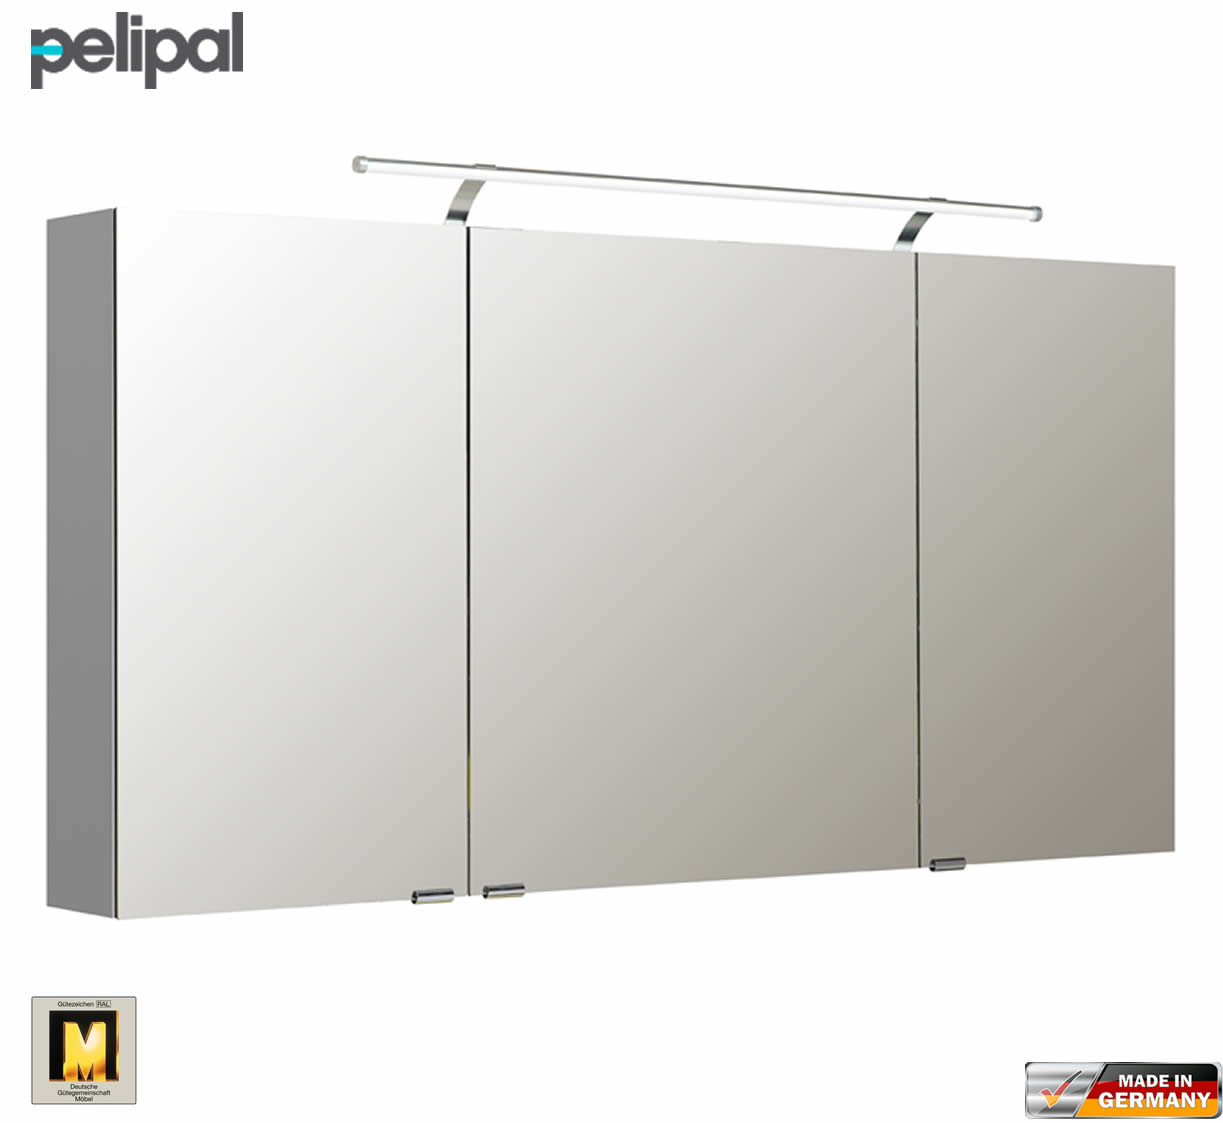 pelipal neutraler spiegelschrank s5 140 cm mit led aufbauleuchte impulsbad. Black Bedroom Furniture Sets. Home Design Ideas